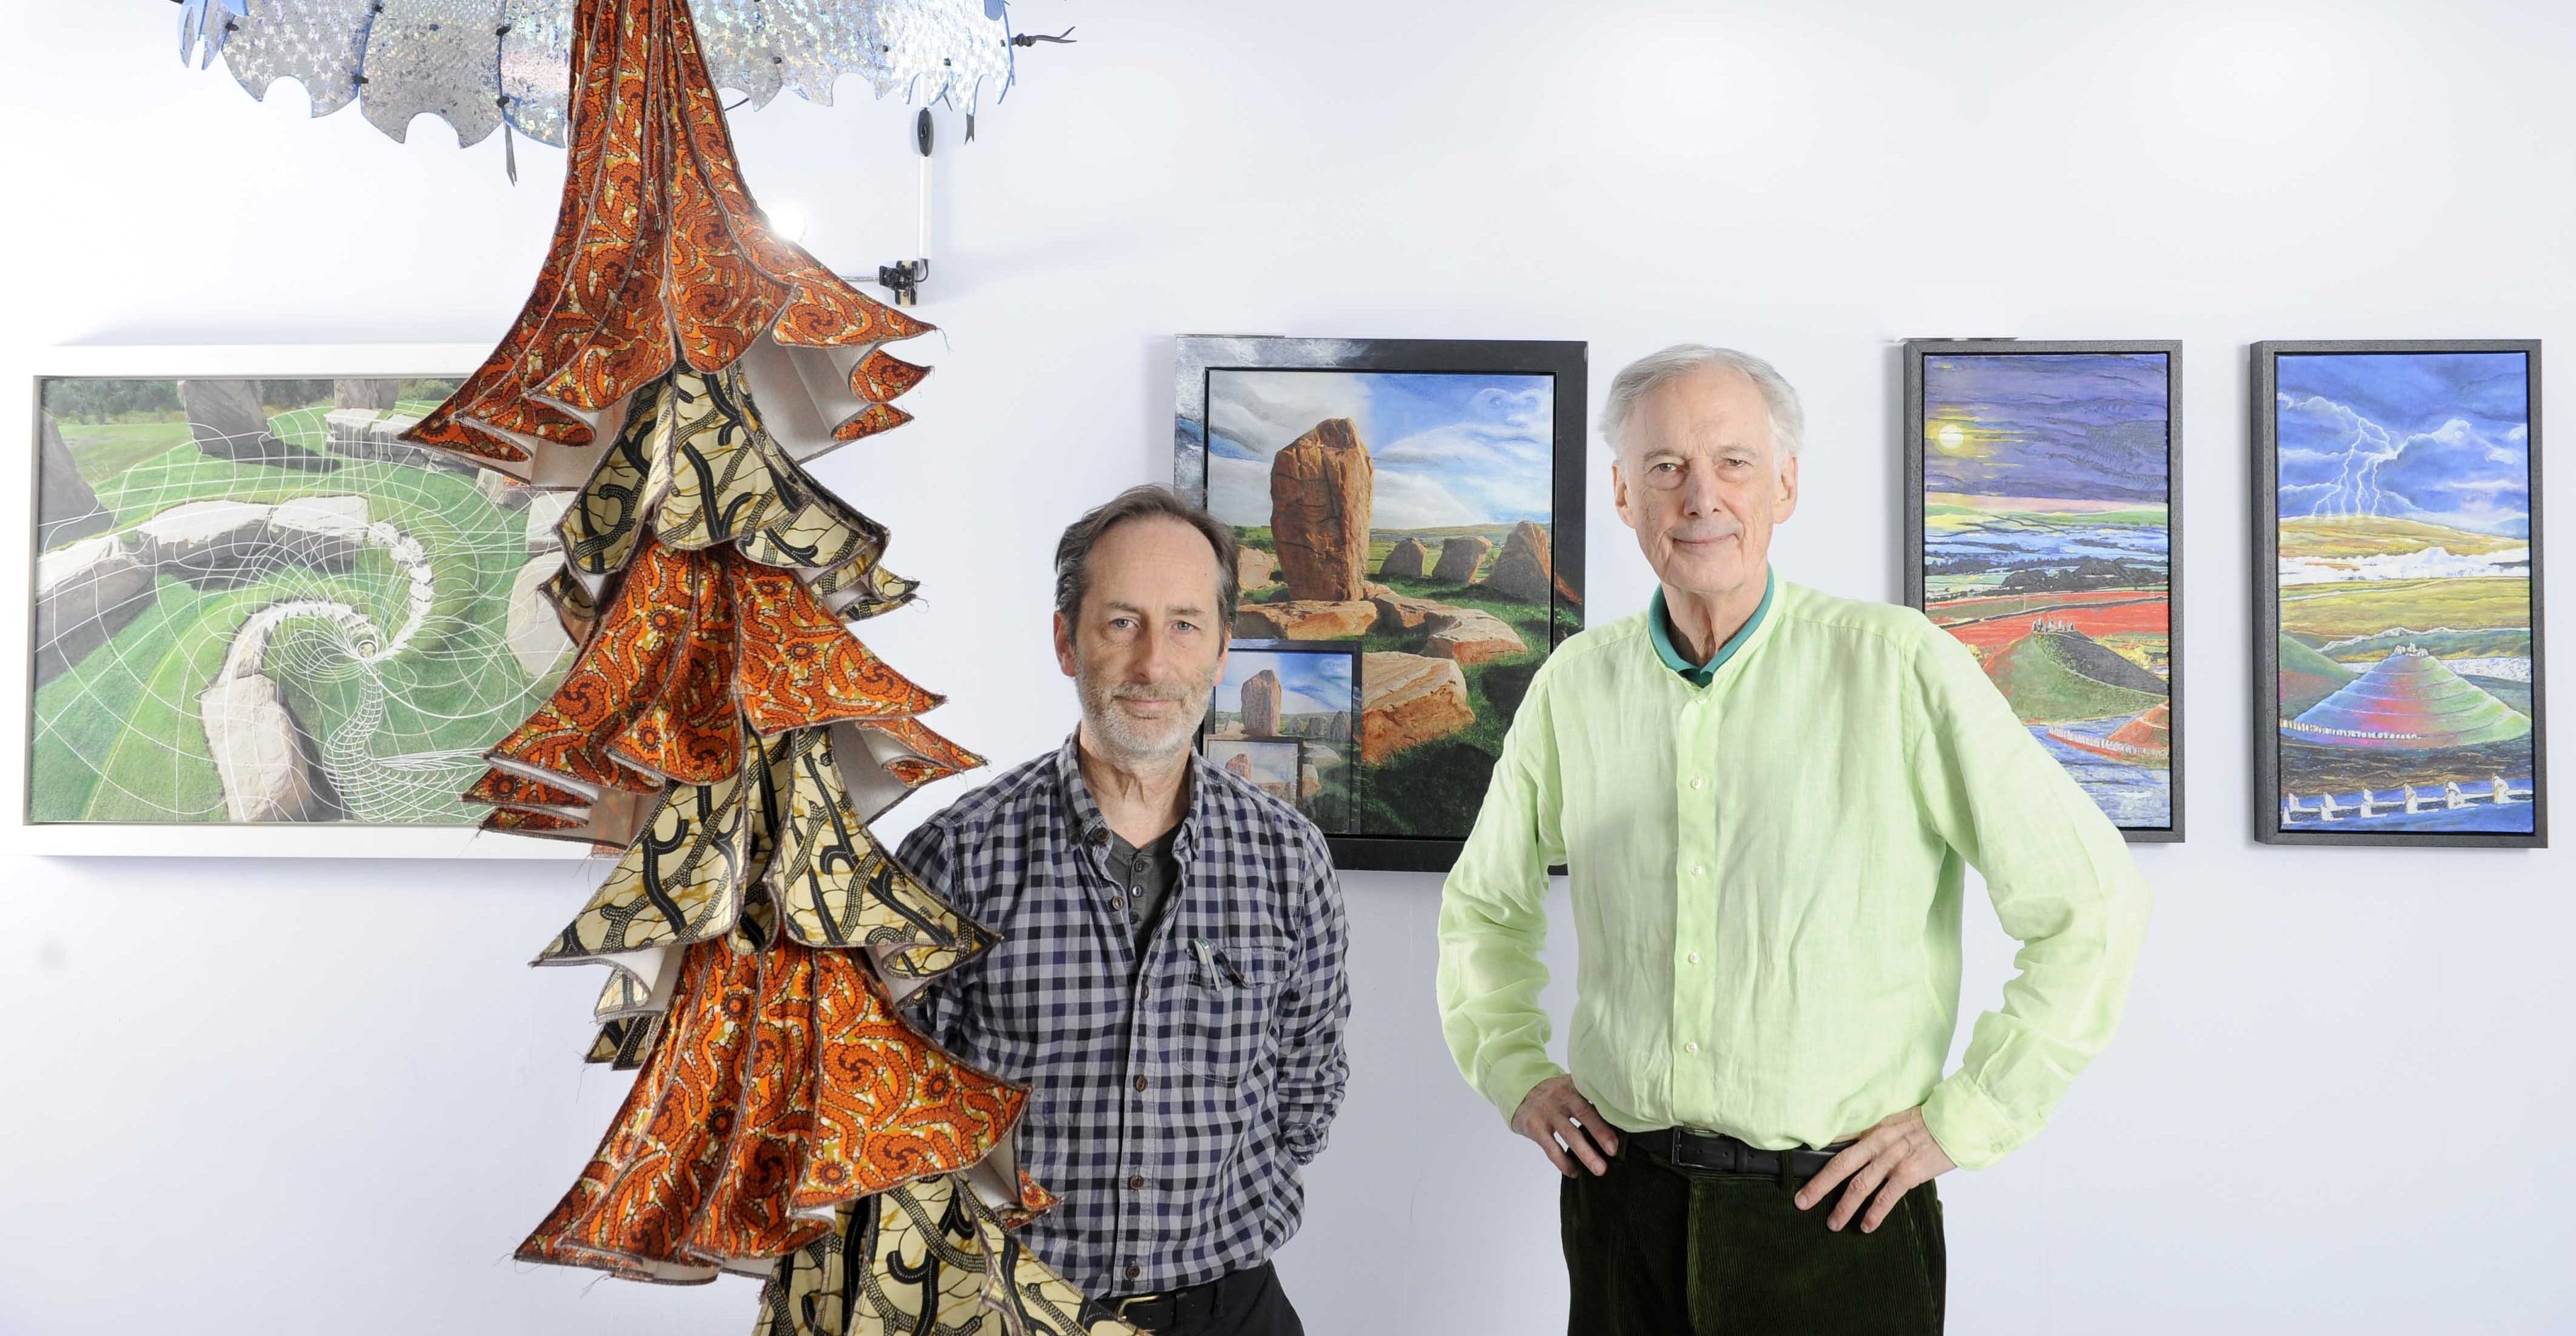 Curator Tim Fitzpatrick (left) with artist Charles Jencks and a textile sculpture by Alex Rigg entitled Black Hole, Black Coal.